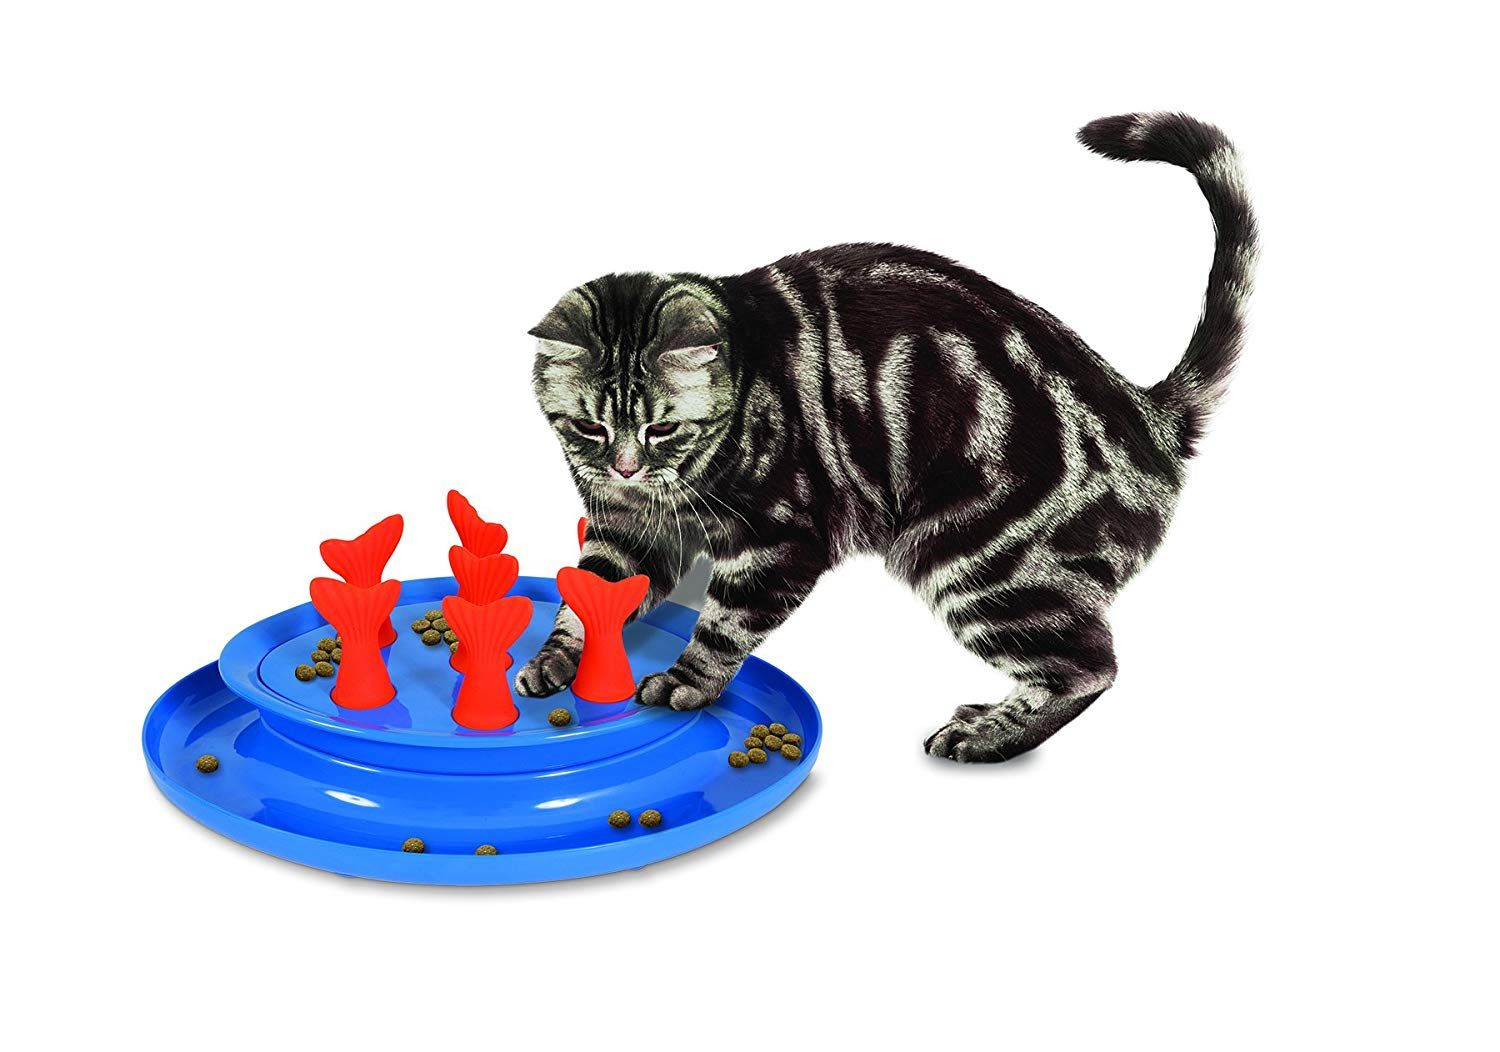 Petmate Jackson Galaxy Go Fish Slow Feeder Puzzle Bowl We Do Hope You Like The Picture This Is Our Affiliate Link C Fish Cat Toy Jackson Galaxy Cat Toys